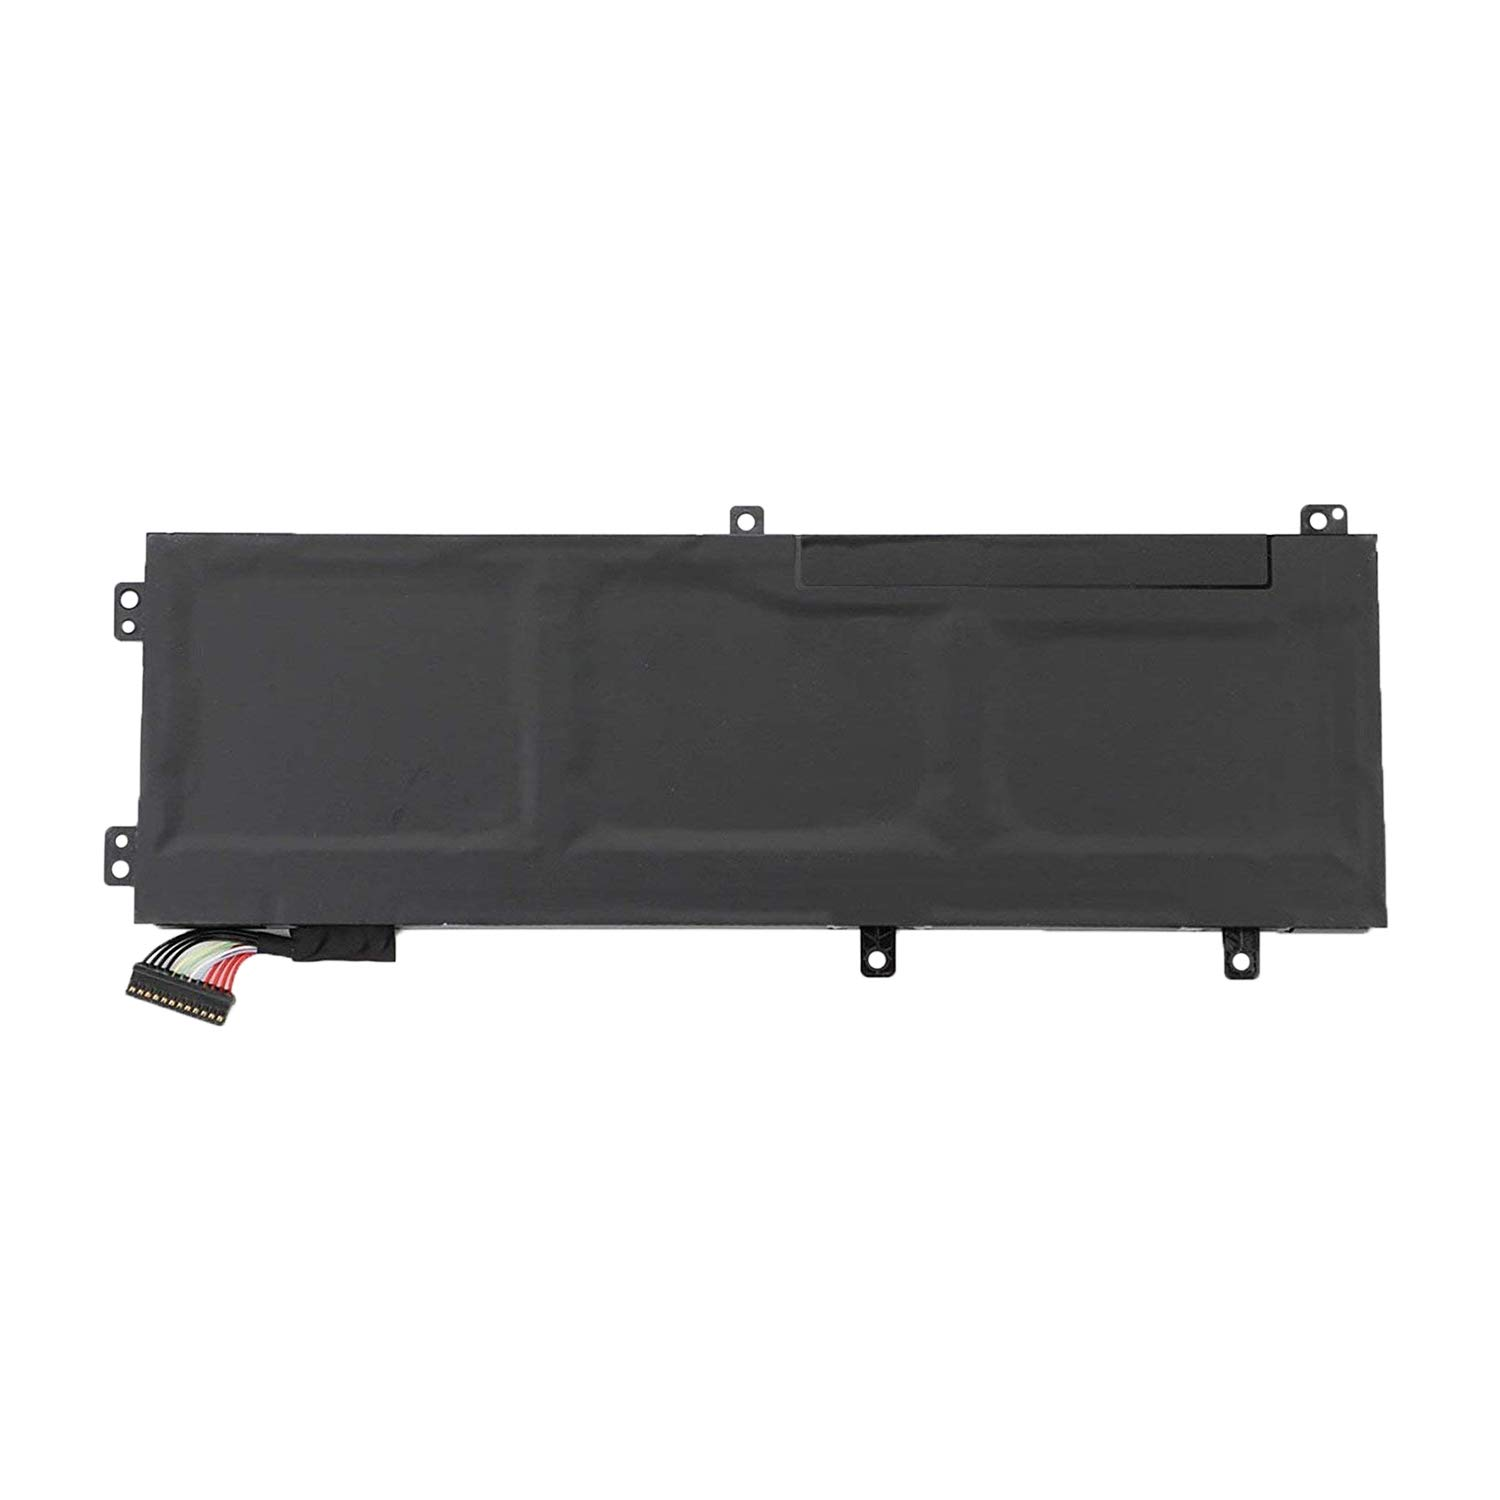 JIAZIJIA Compatible Laptop Battery with Dell H5H20 [11.4V 56Wh 4946mAh 3-Cell] XPS 15 9560 9570 Precision 5520 M5520 Series Notebook 6GPTY 62MJV M7R96 Black - 1 Year Warranty by JIAZIJIA (Image #6)